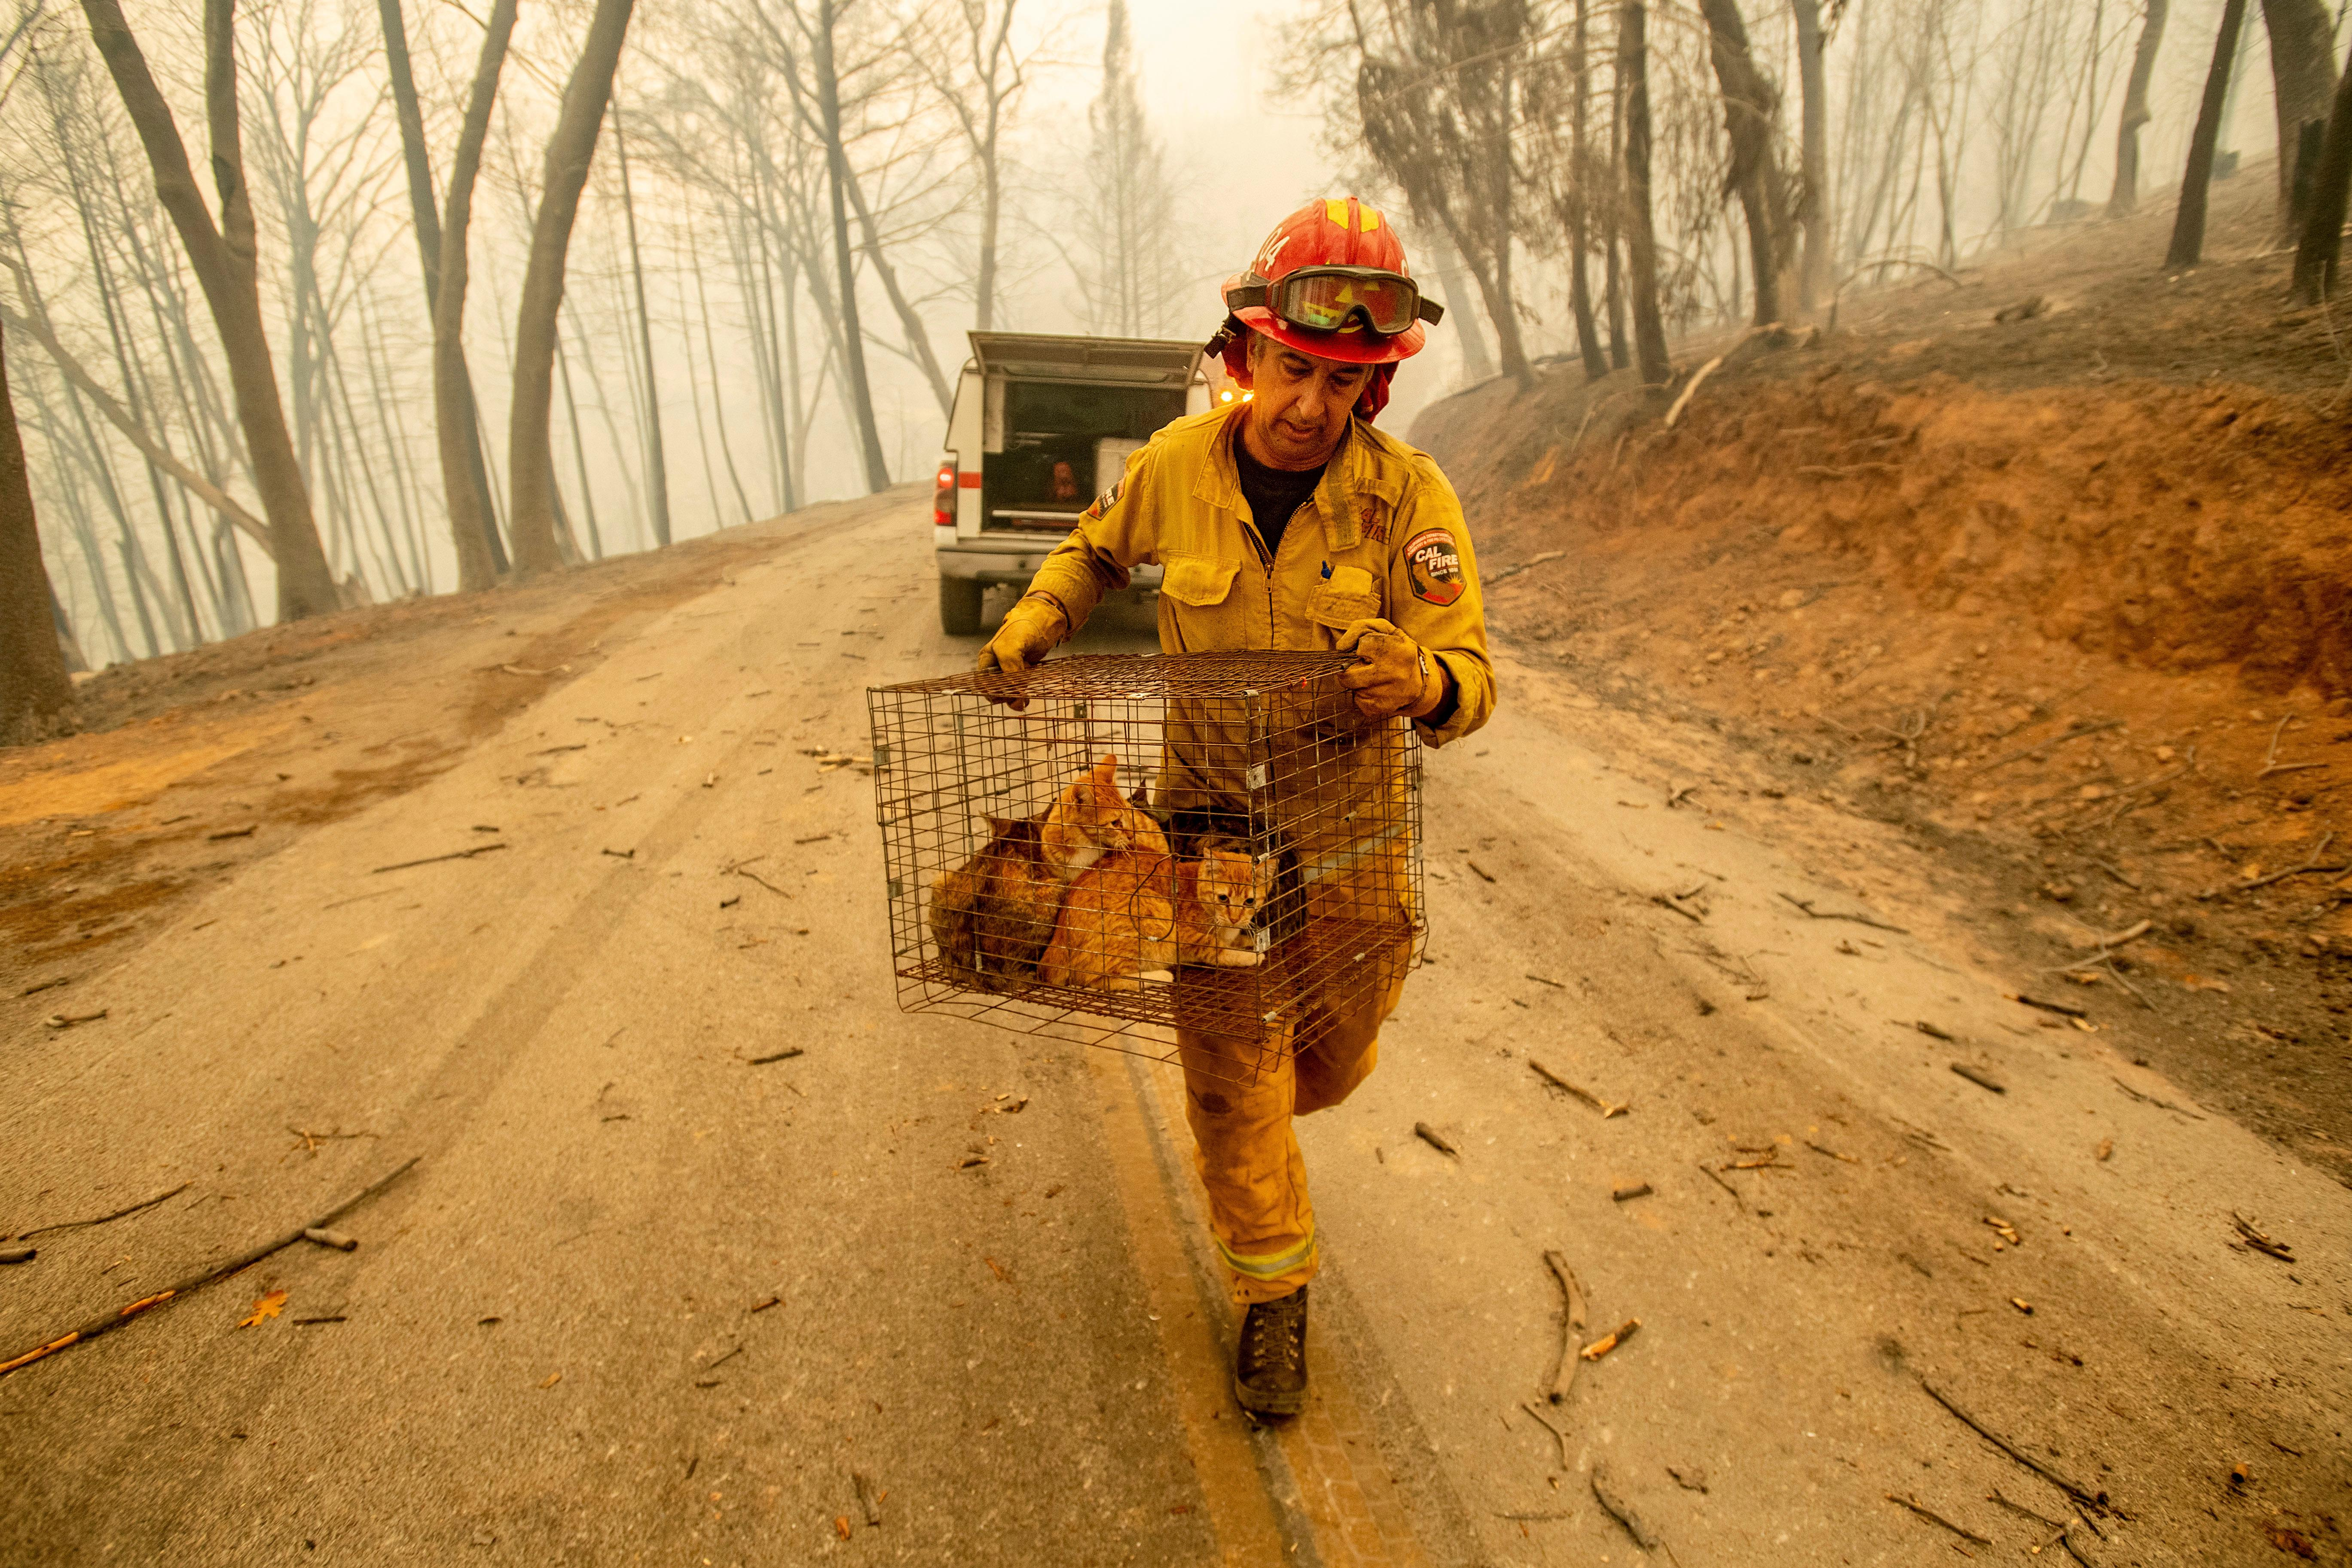 Capt. Steve Millosovich carries a cage of cats while battling the Camp Fire in Big Bend, Calif., on Friday, Nov. 9, 2018. Millosovich said the cage fell from the bed of a pick-up truck as an evacuee drove to safety. (AP Photo/Noah Berger, File)